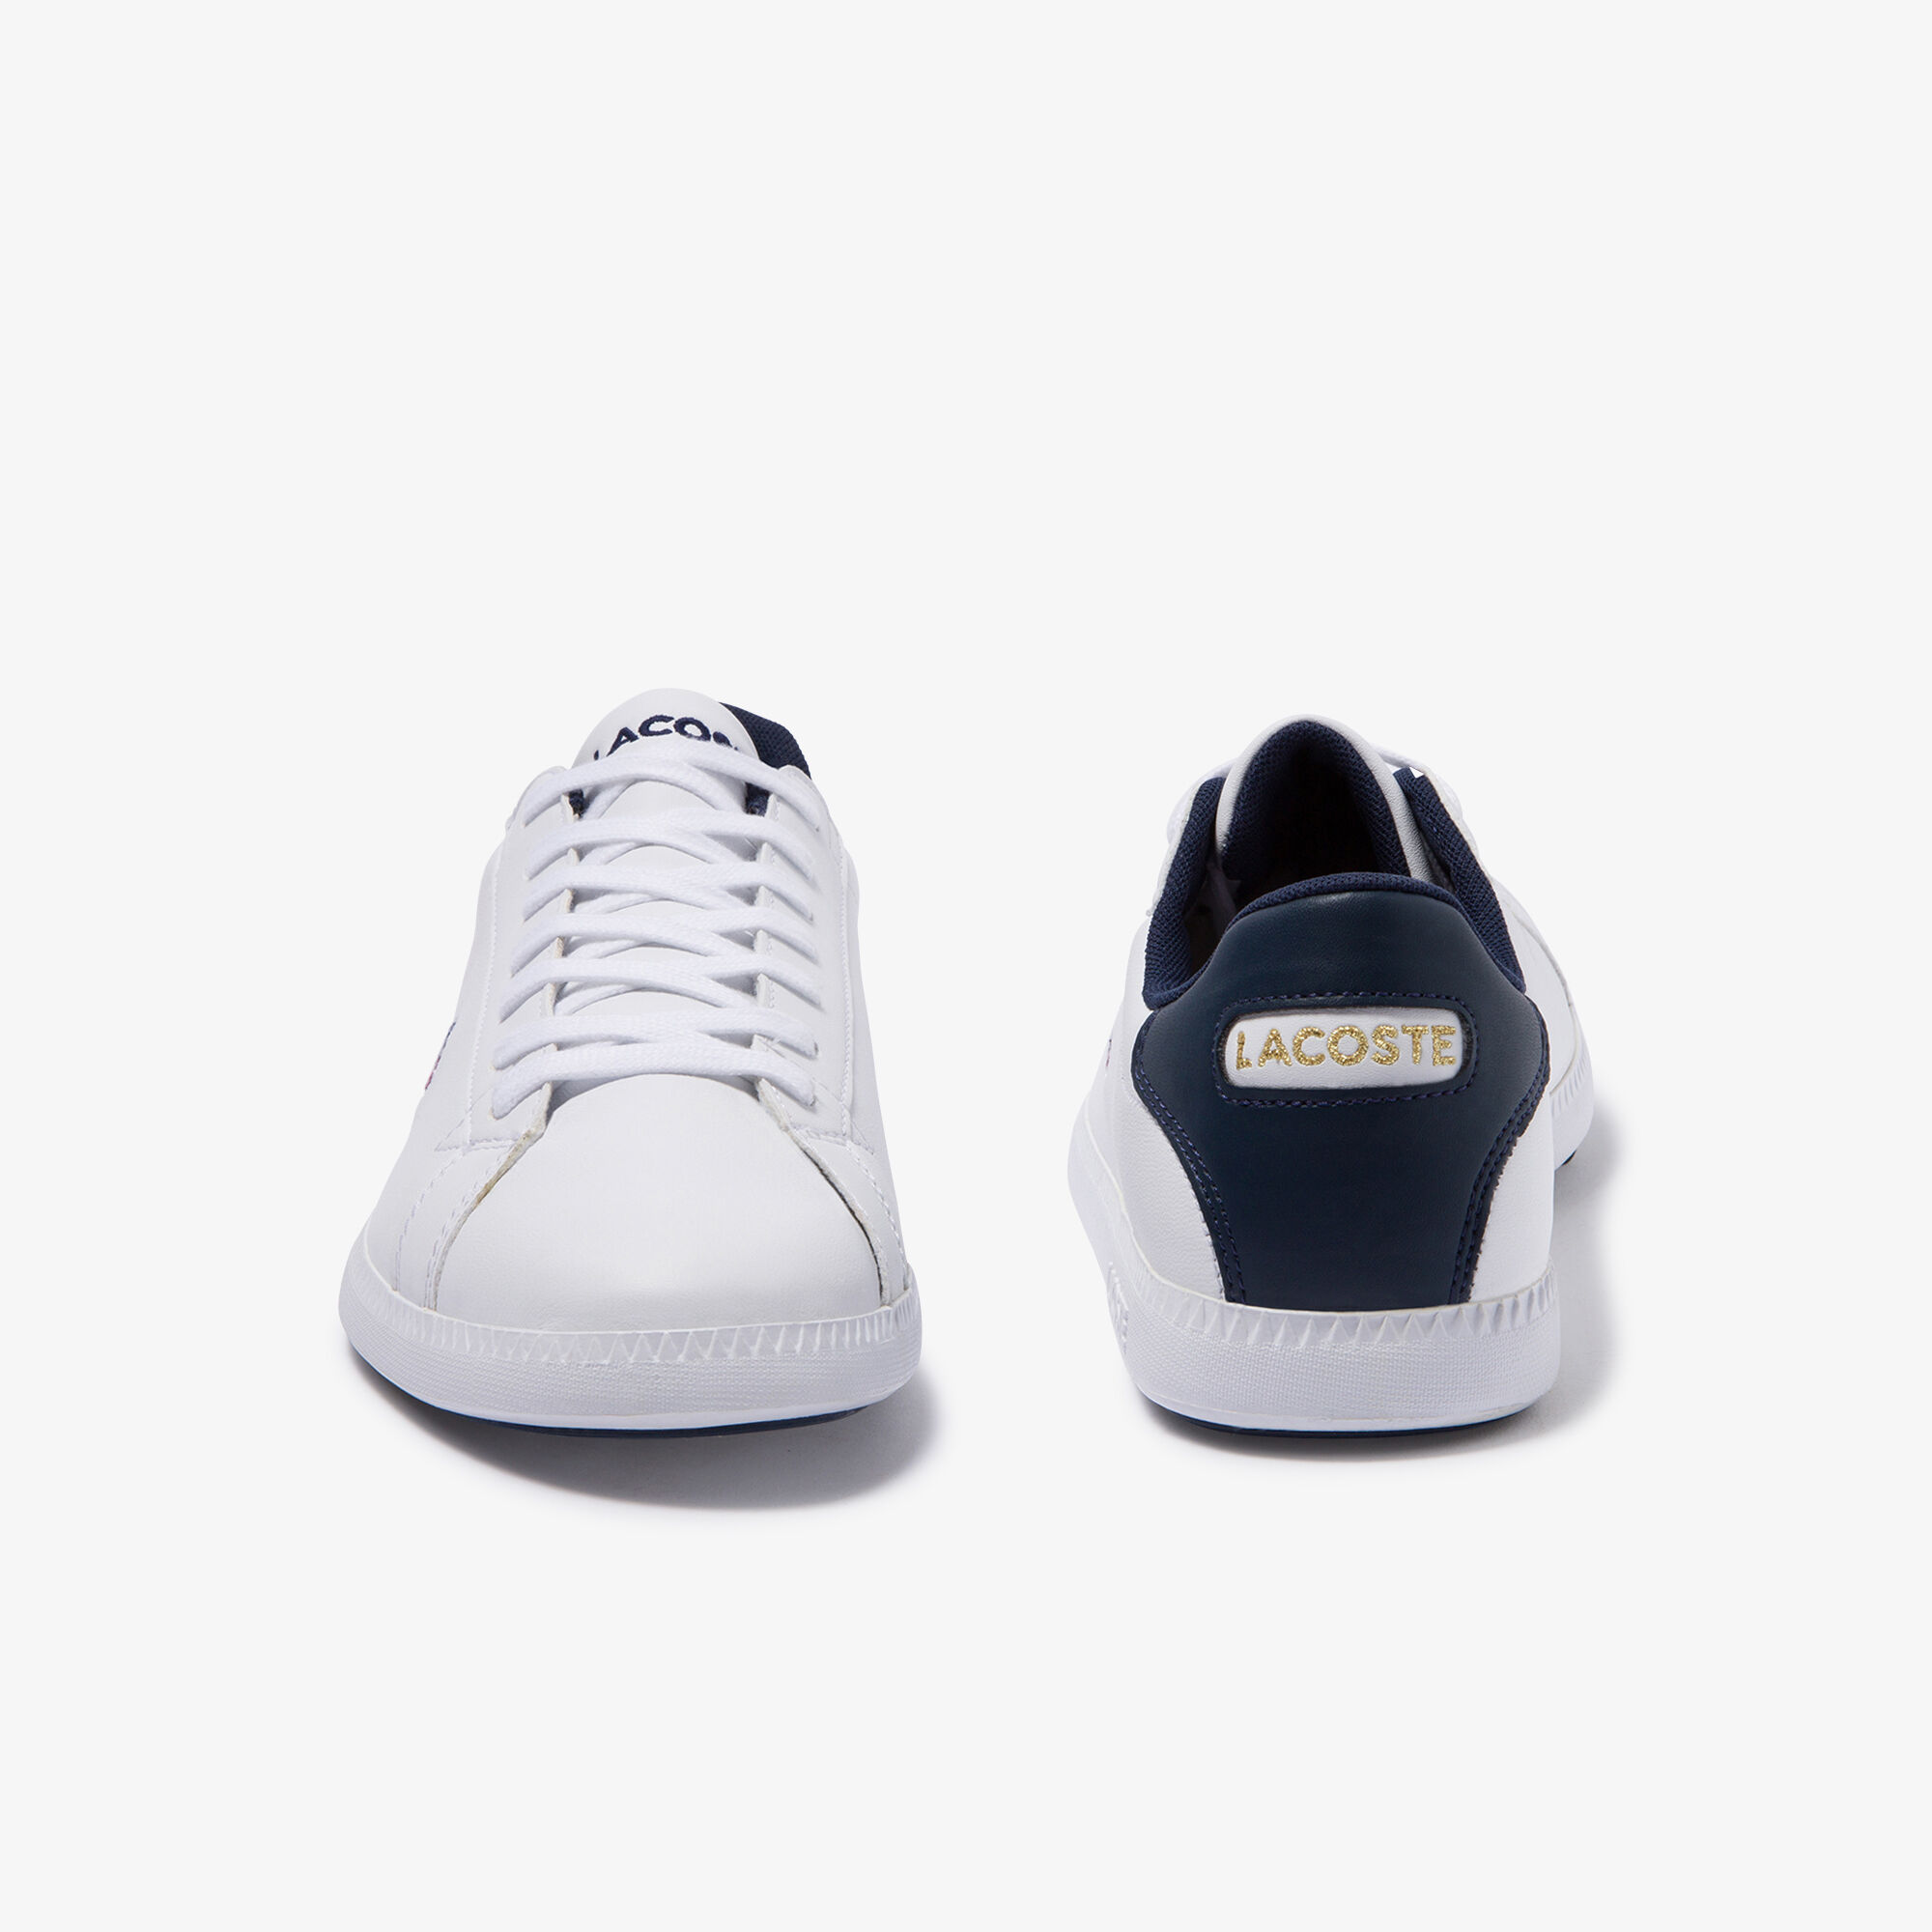 Men's Graduate Tricolore Leather and Synthetic Trainers